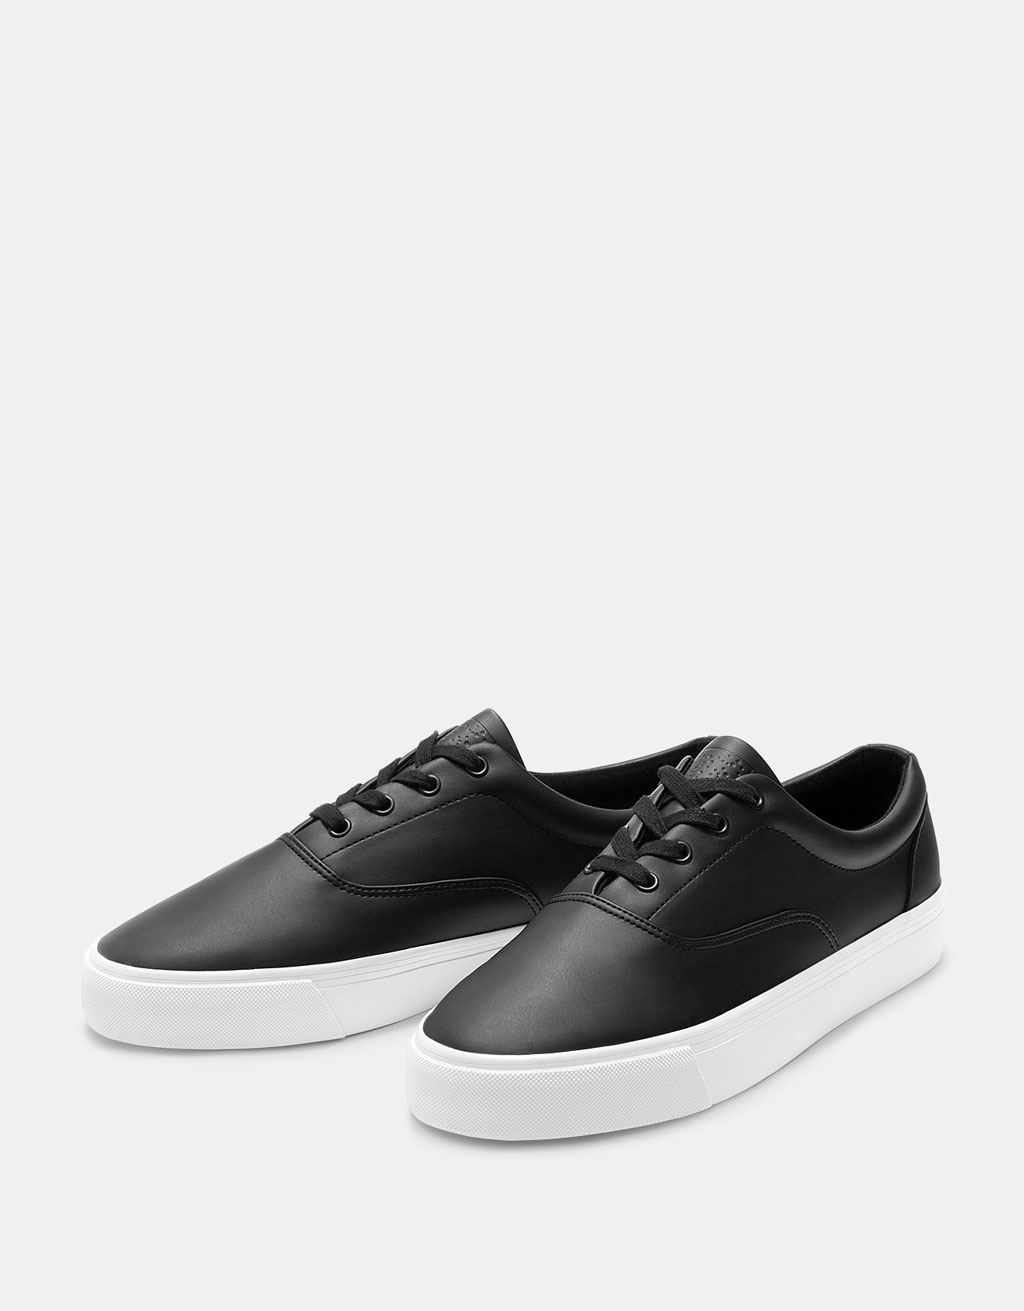 Men's casual black sneakers